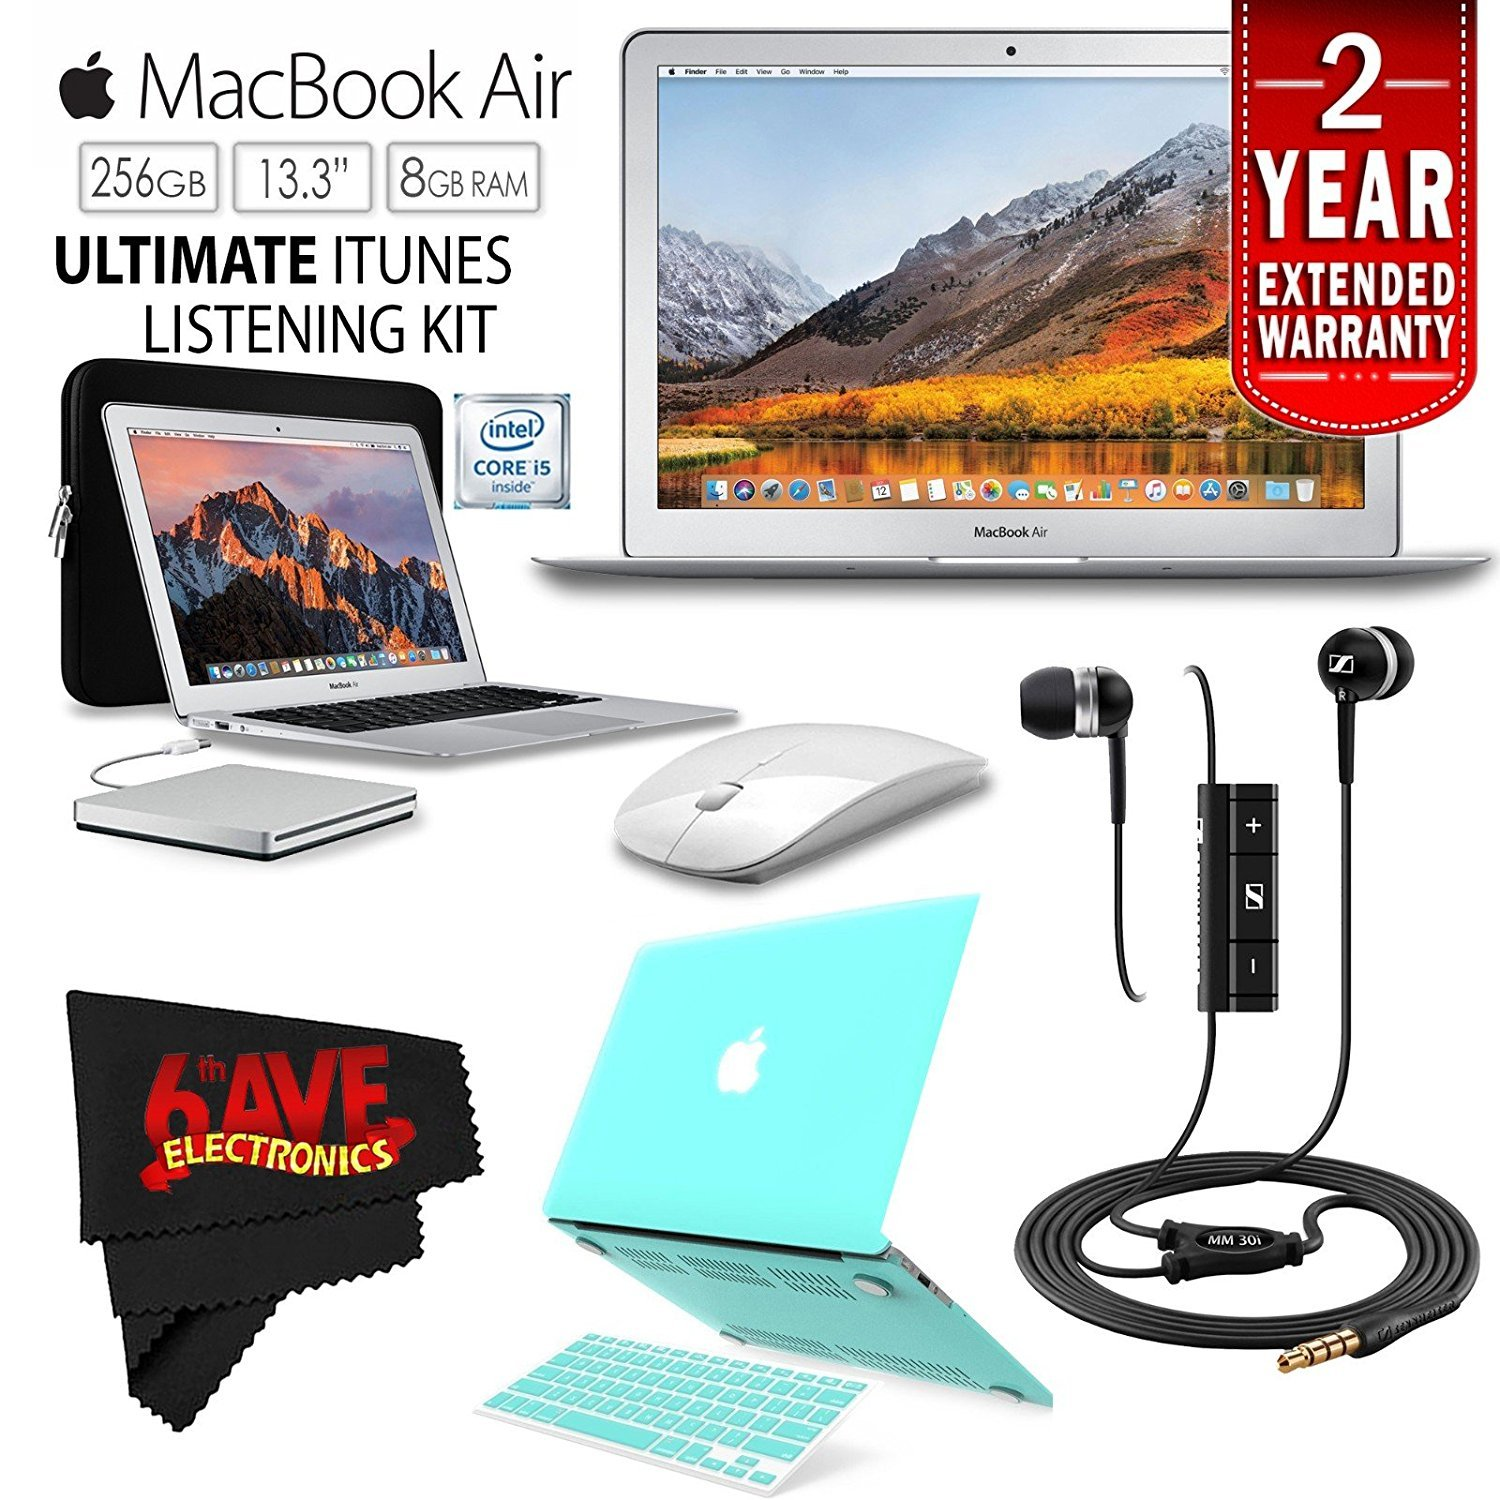 "6Ave Apple 13.3"" MacBook Air 256GB SSD MQD42LL/A + iBenzer Basic Soft-Touch Series Plastic Hard Case & Keyboard Cover for Apple Macbook Air 13-inch 13"" (Turquoise) + Apple USB SuperDrive Bundle"